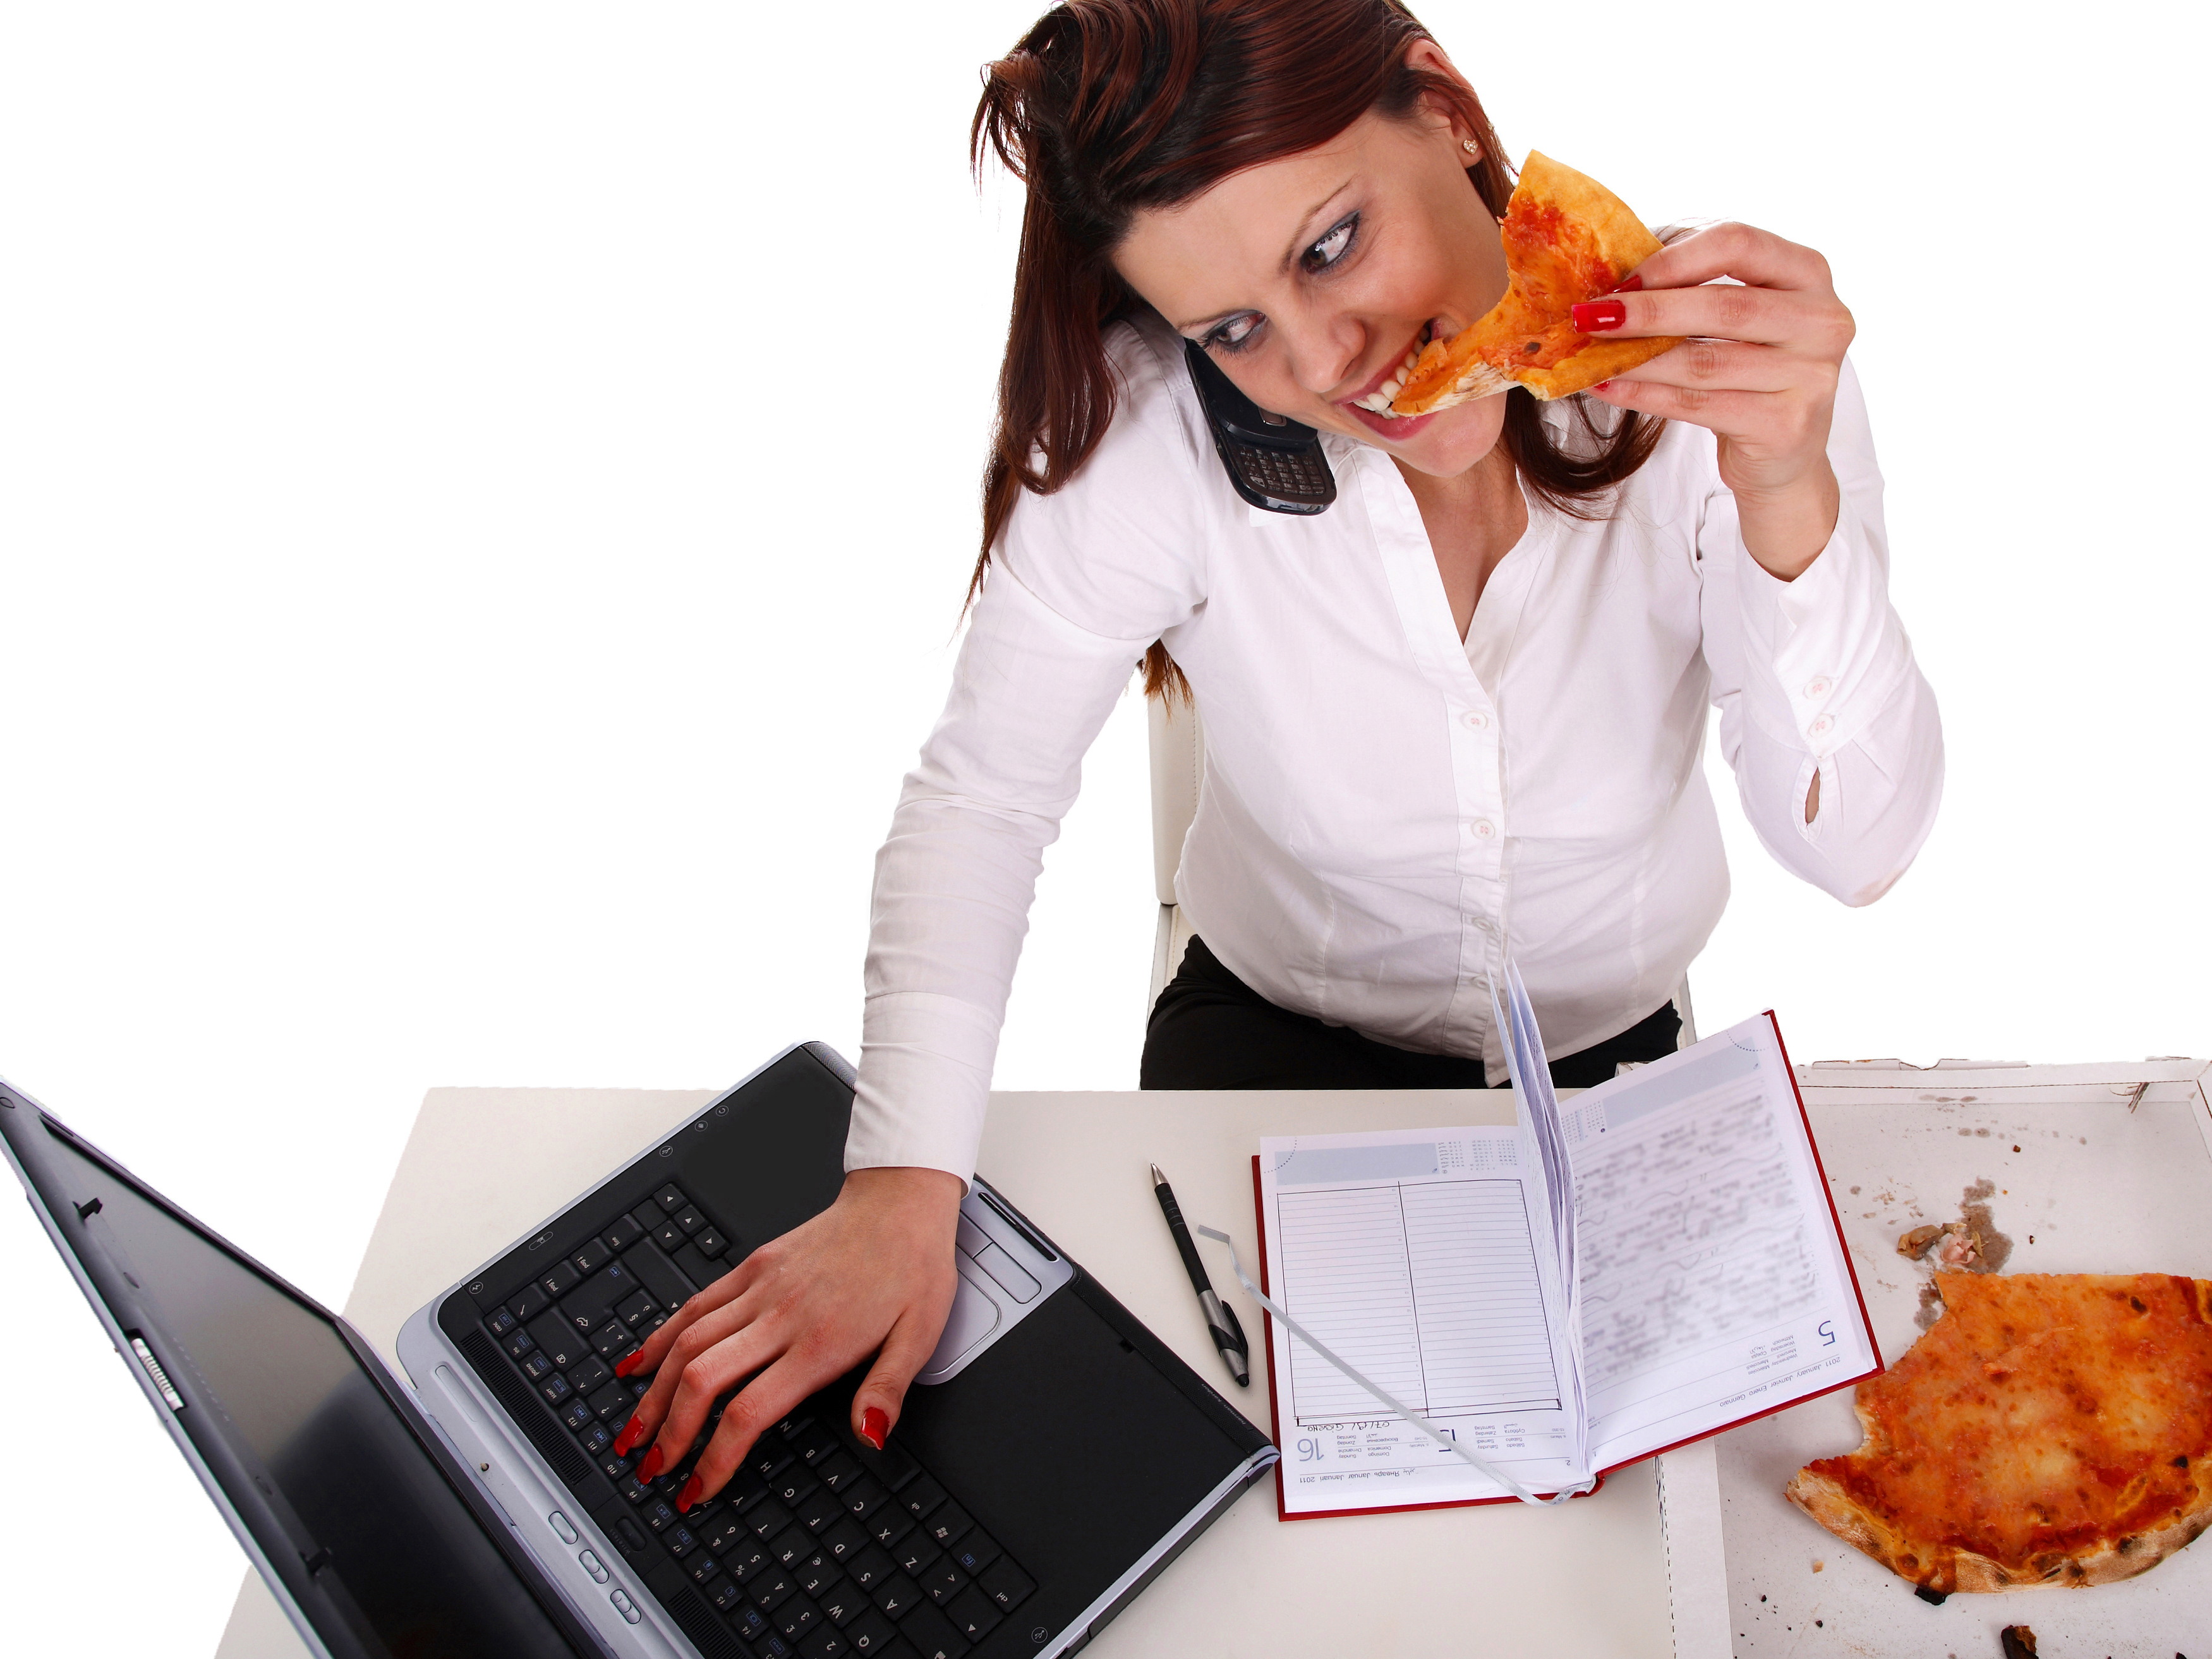 Do you crave pizza when you are stressed? It's likely a learned behavior.